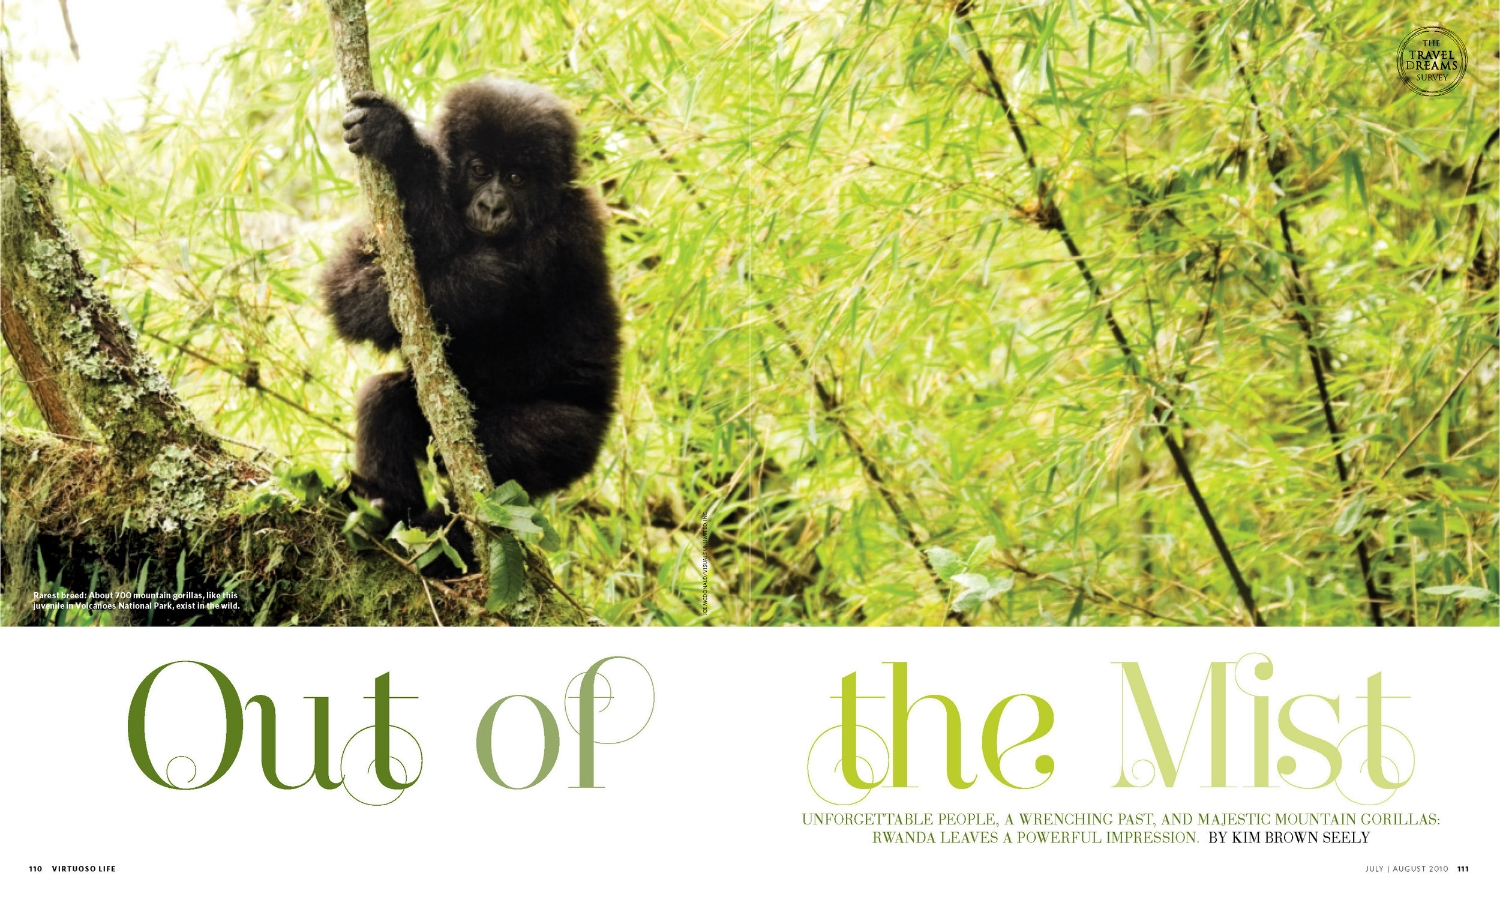 09_virtuosolife_20100708 - Out of the Mist_cover.jpg